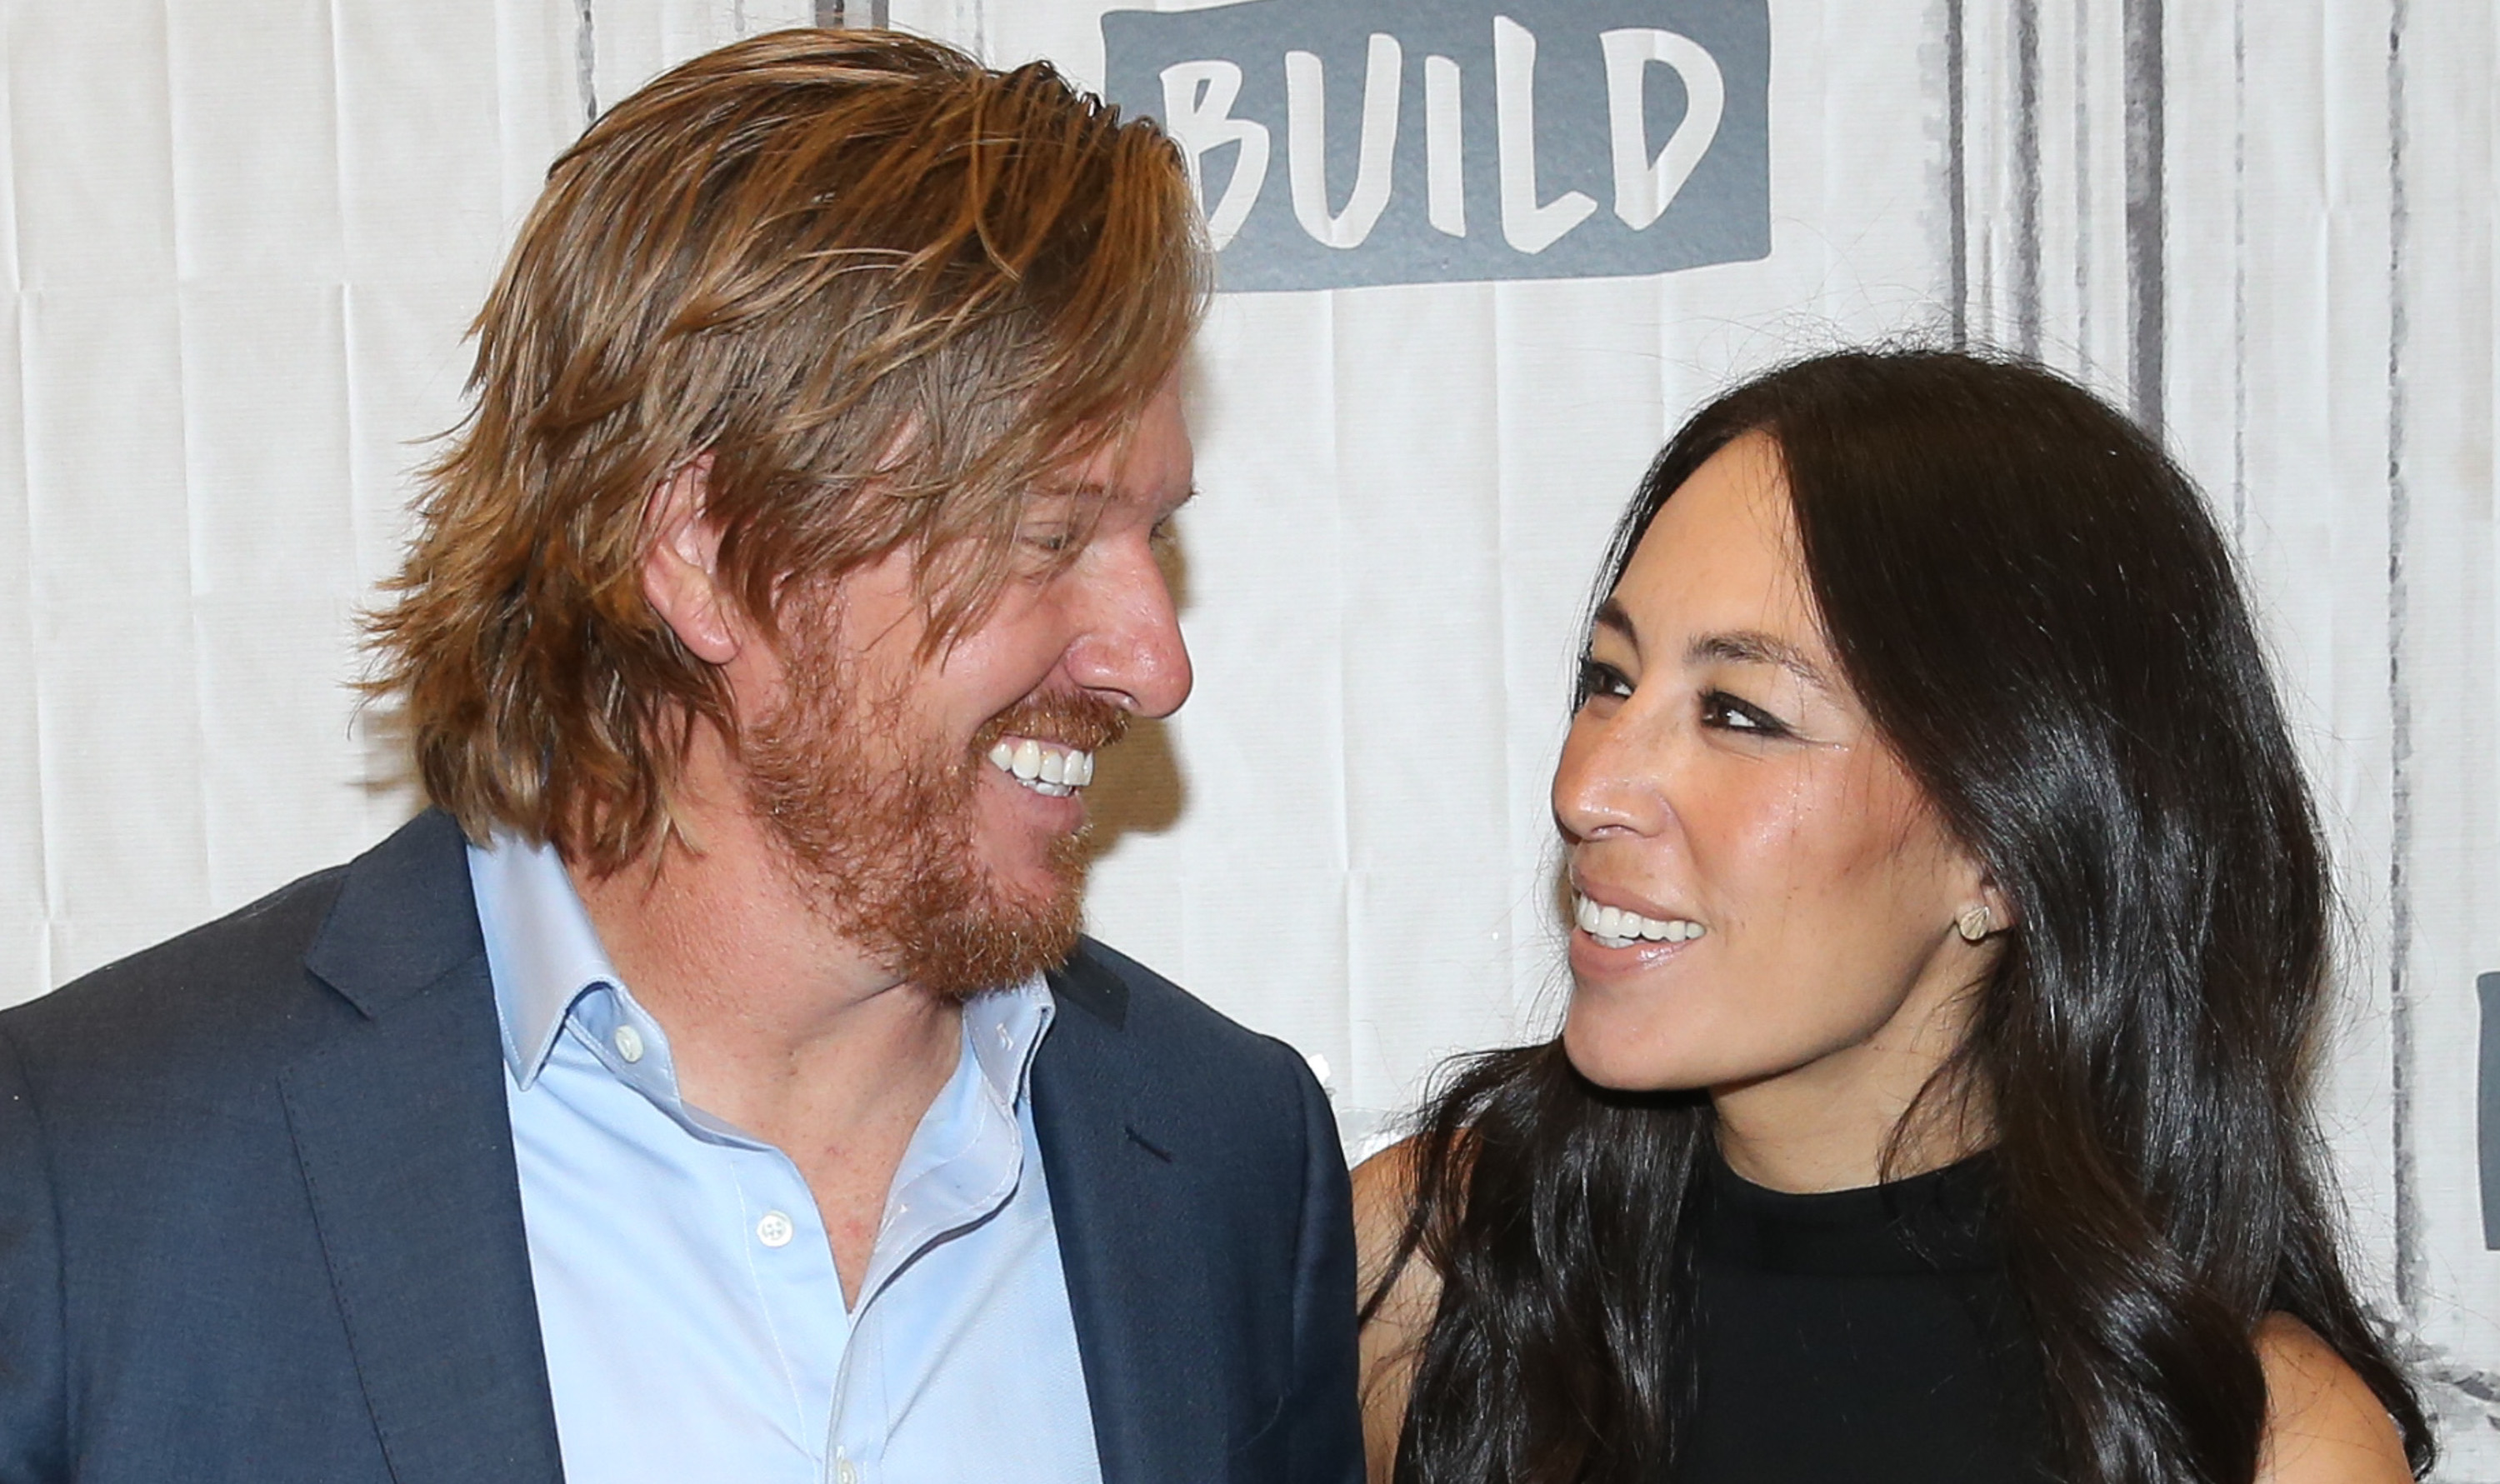 Chip Gaines Leaves Romantic Message on Silo for Wife Joanna — See the Lovely Photo!